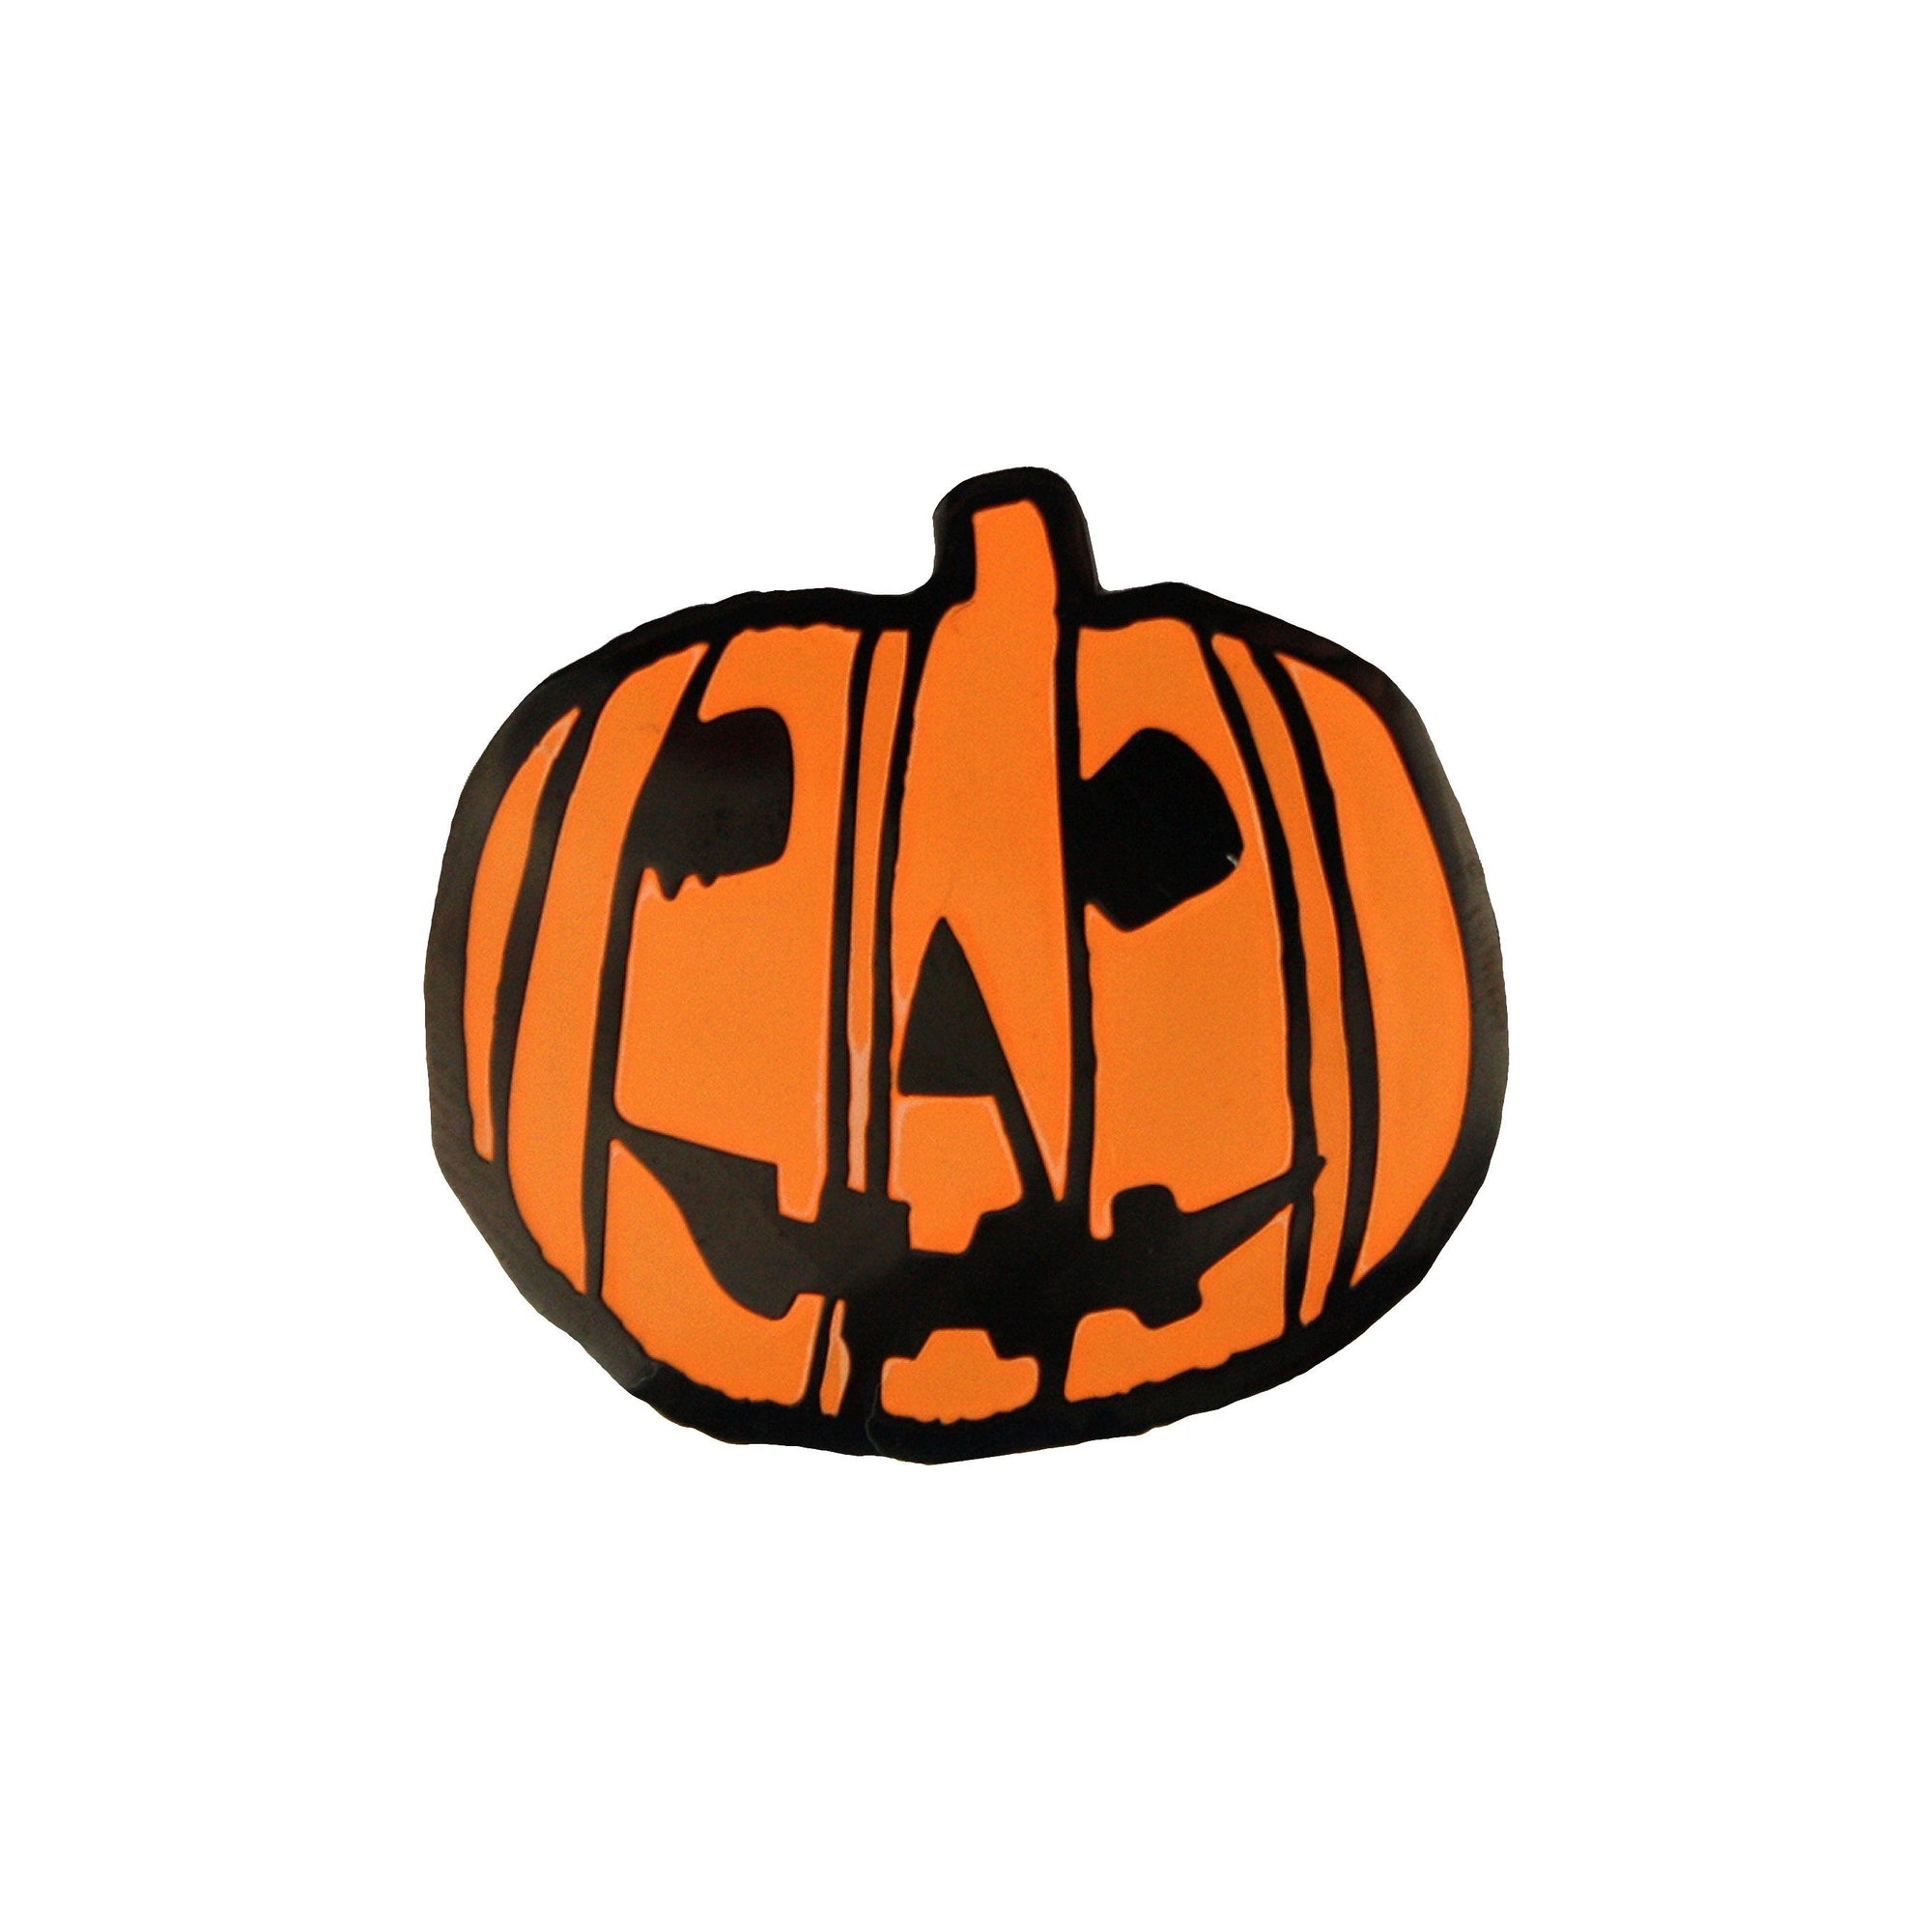 Halloween Movie Pumpkin 2018.Halloween 2018 Jack O Lantern Gid Enamel Pin